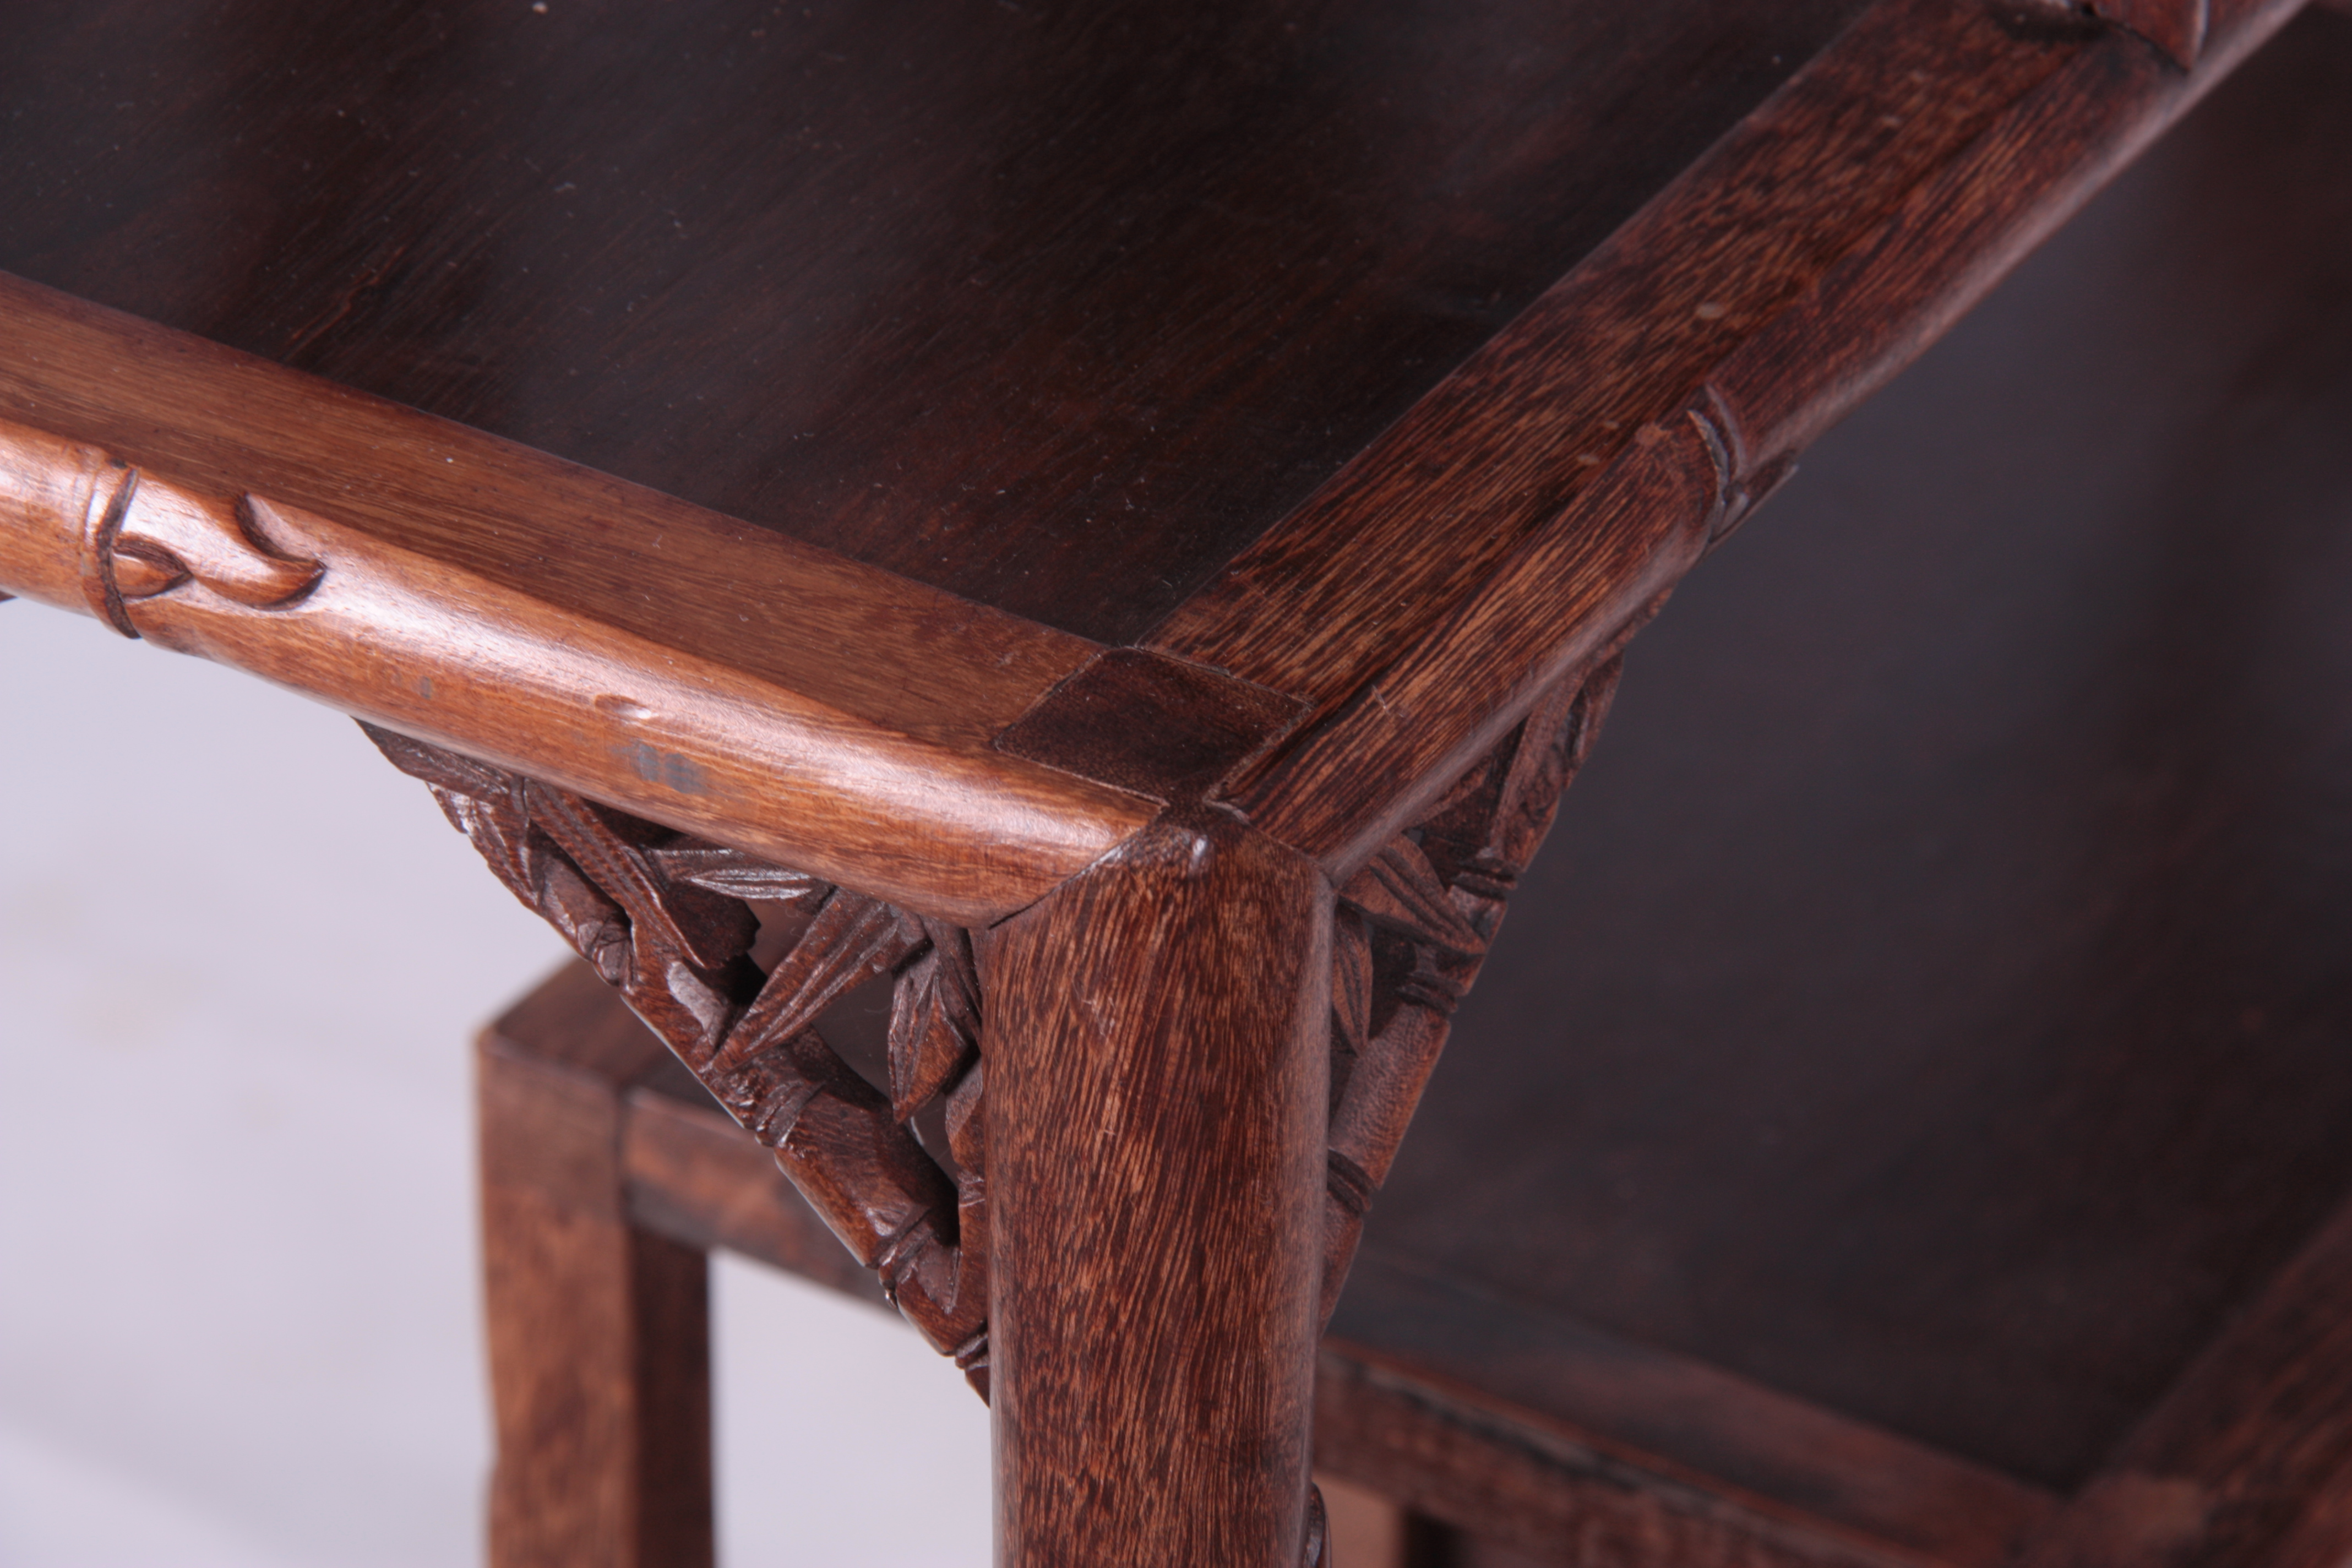 A 19TH CENTURY CHINESE CHICKEN WING WOOD STANDING WHATNOT with a faux bamboo frame and leaf carved - Image 8 of 9